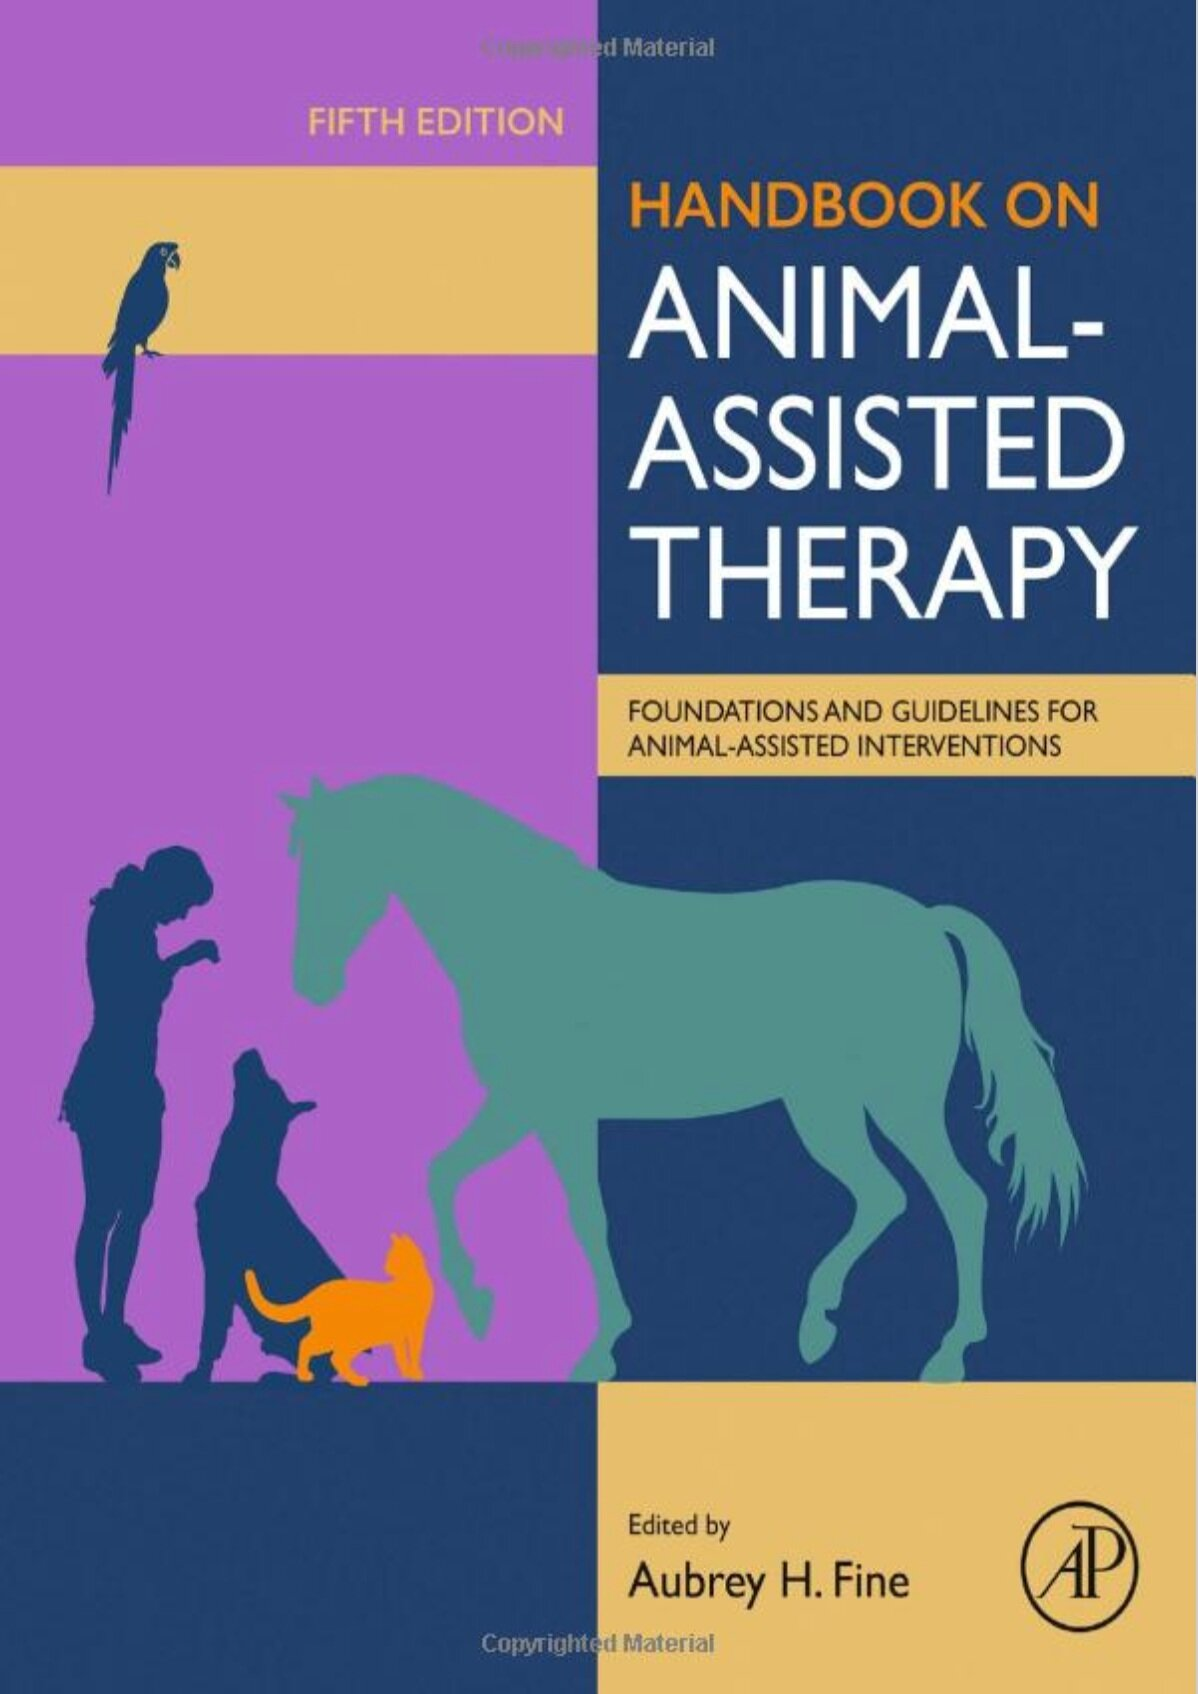 Animal Assisted Therapy 5th Edition